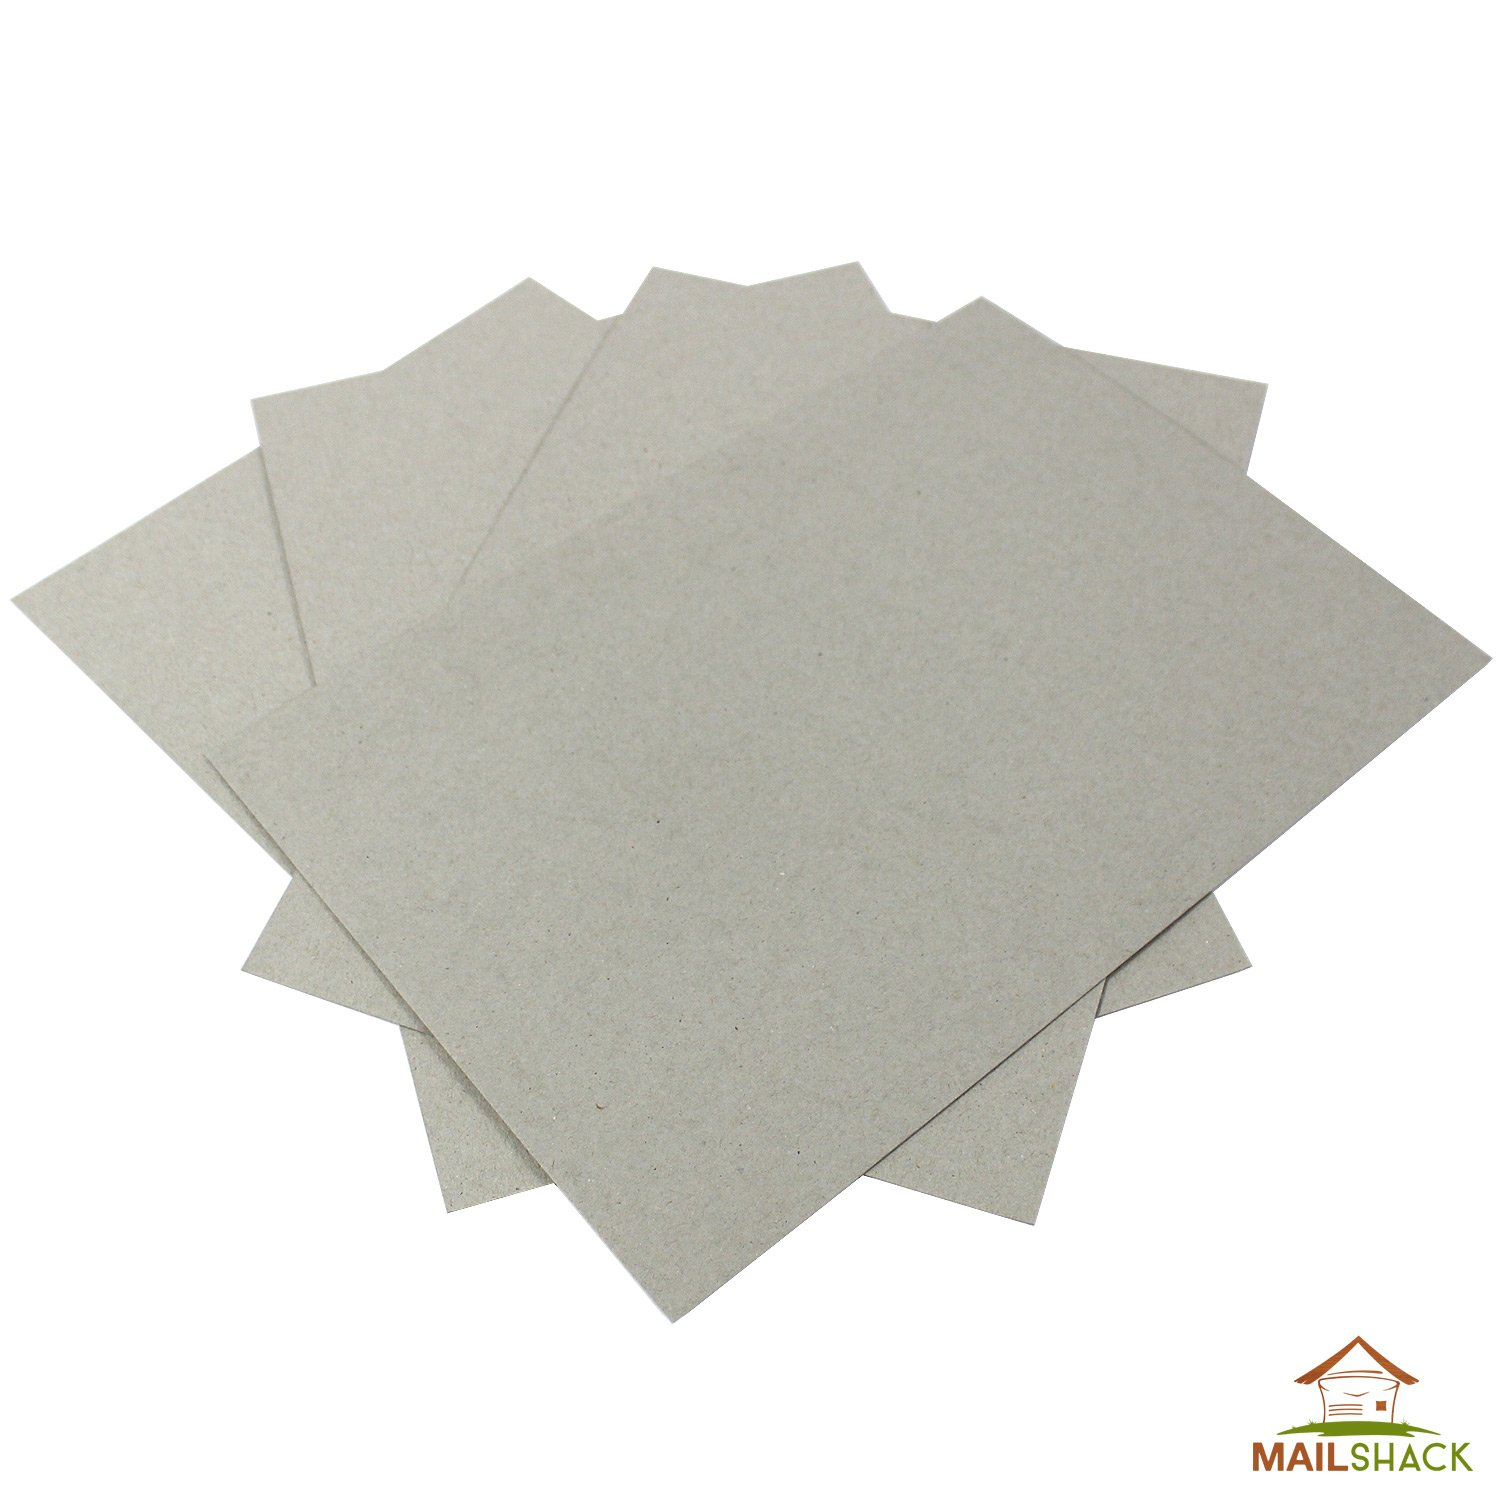 100 Sheets A5 PREMIUM 2250 MICRON 2.25mm GREYBOARD THICK STRONG Backing Card Craft MAILSHACK